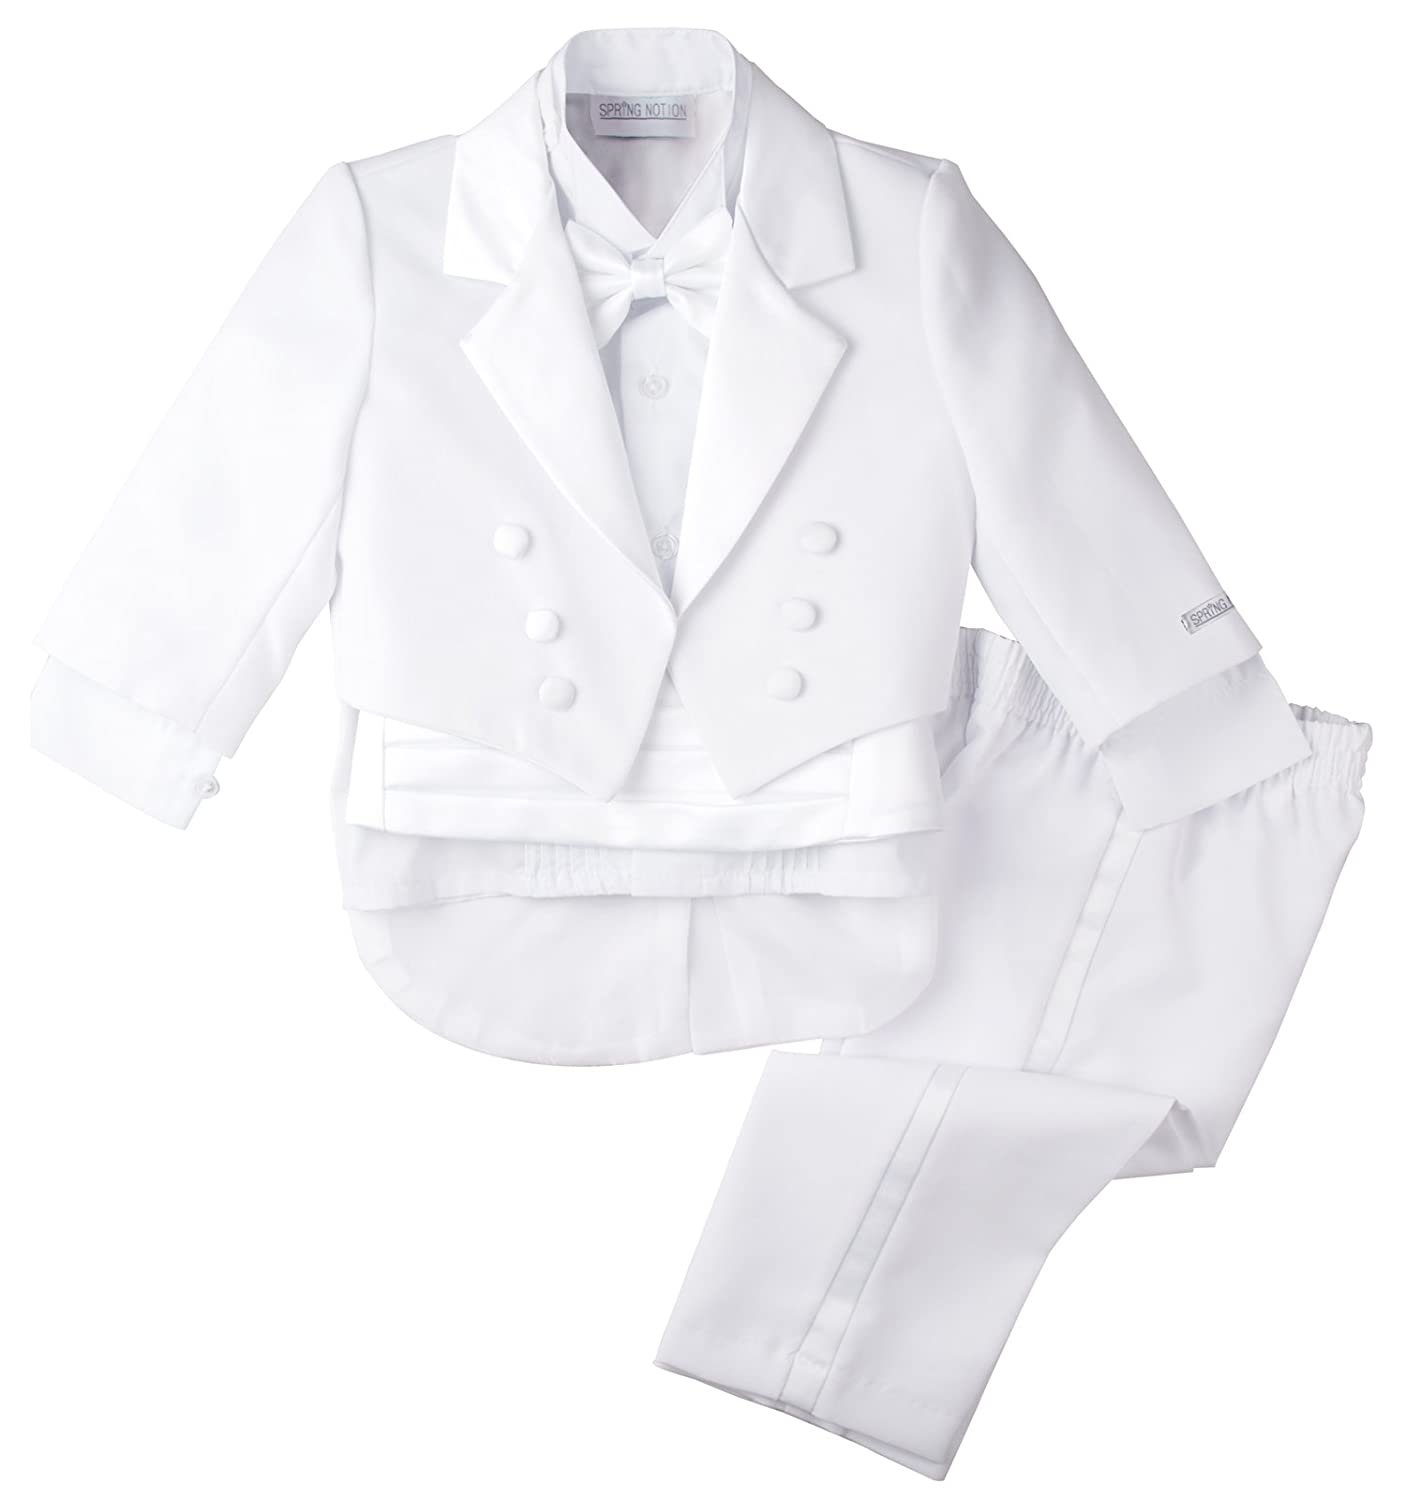 Spring Notion Baby Boys' White Classic Tuxedo Tail ERF008-SNB-008.WT